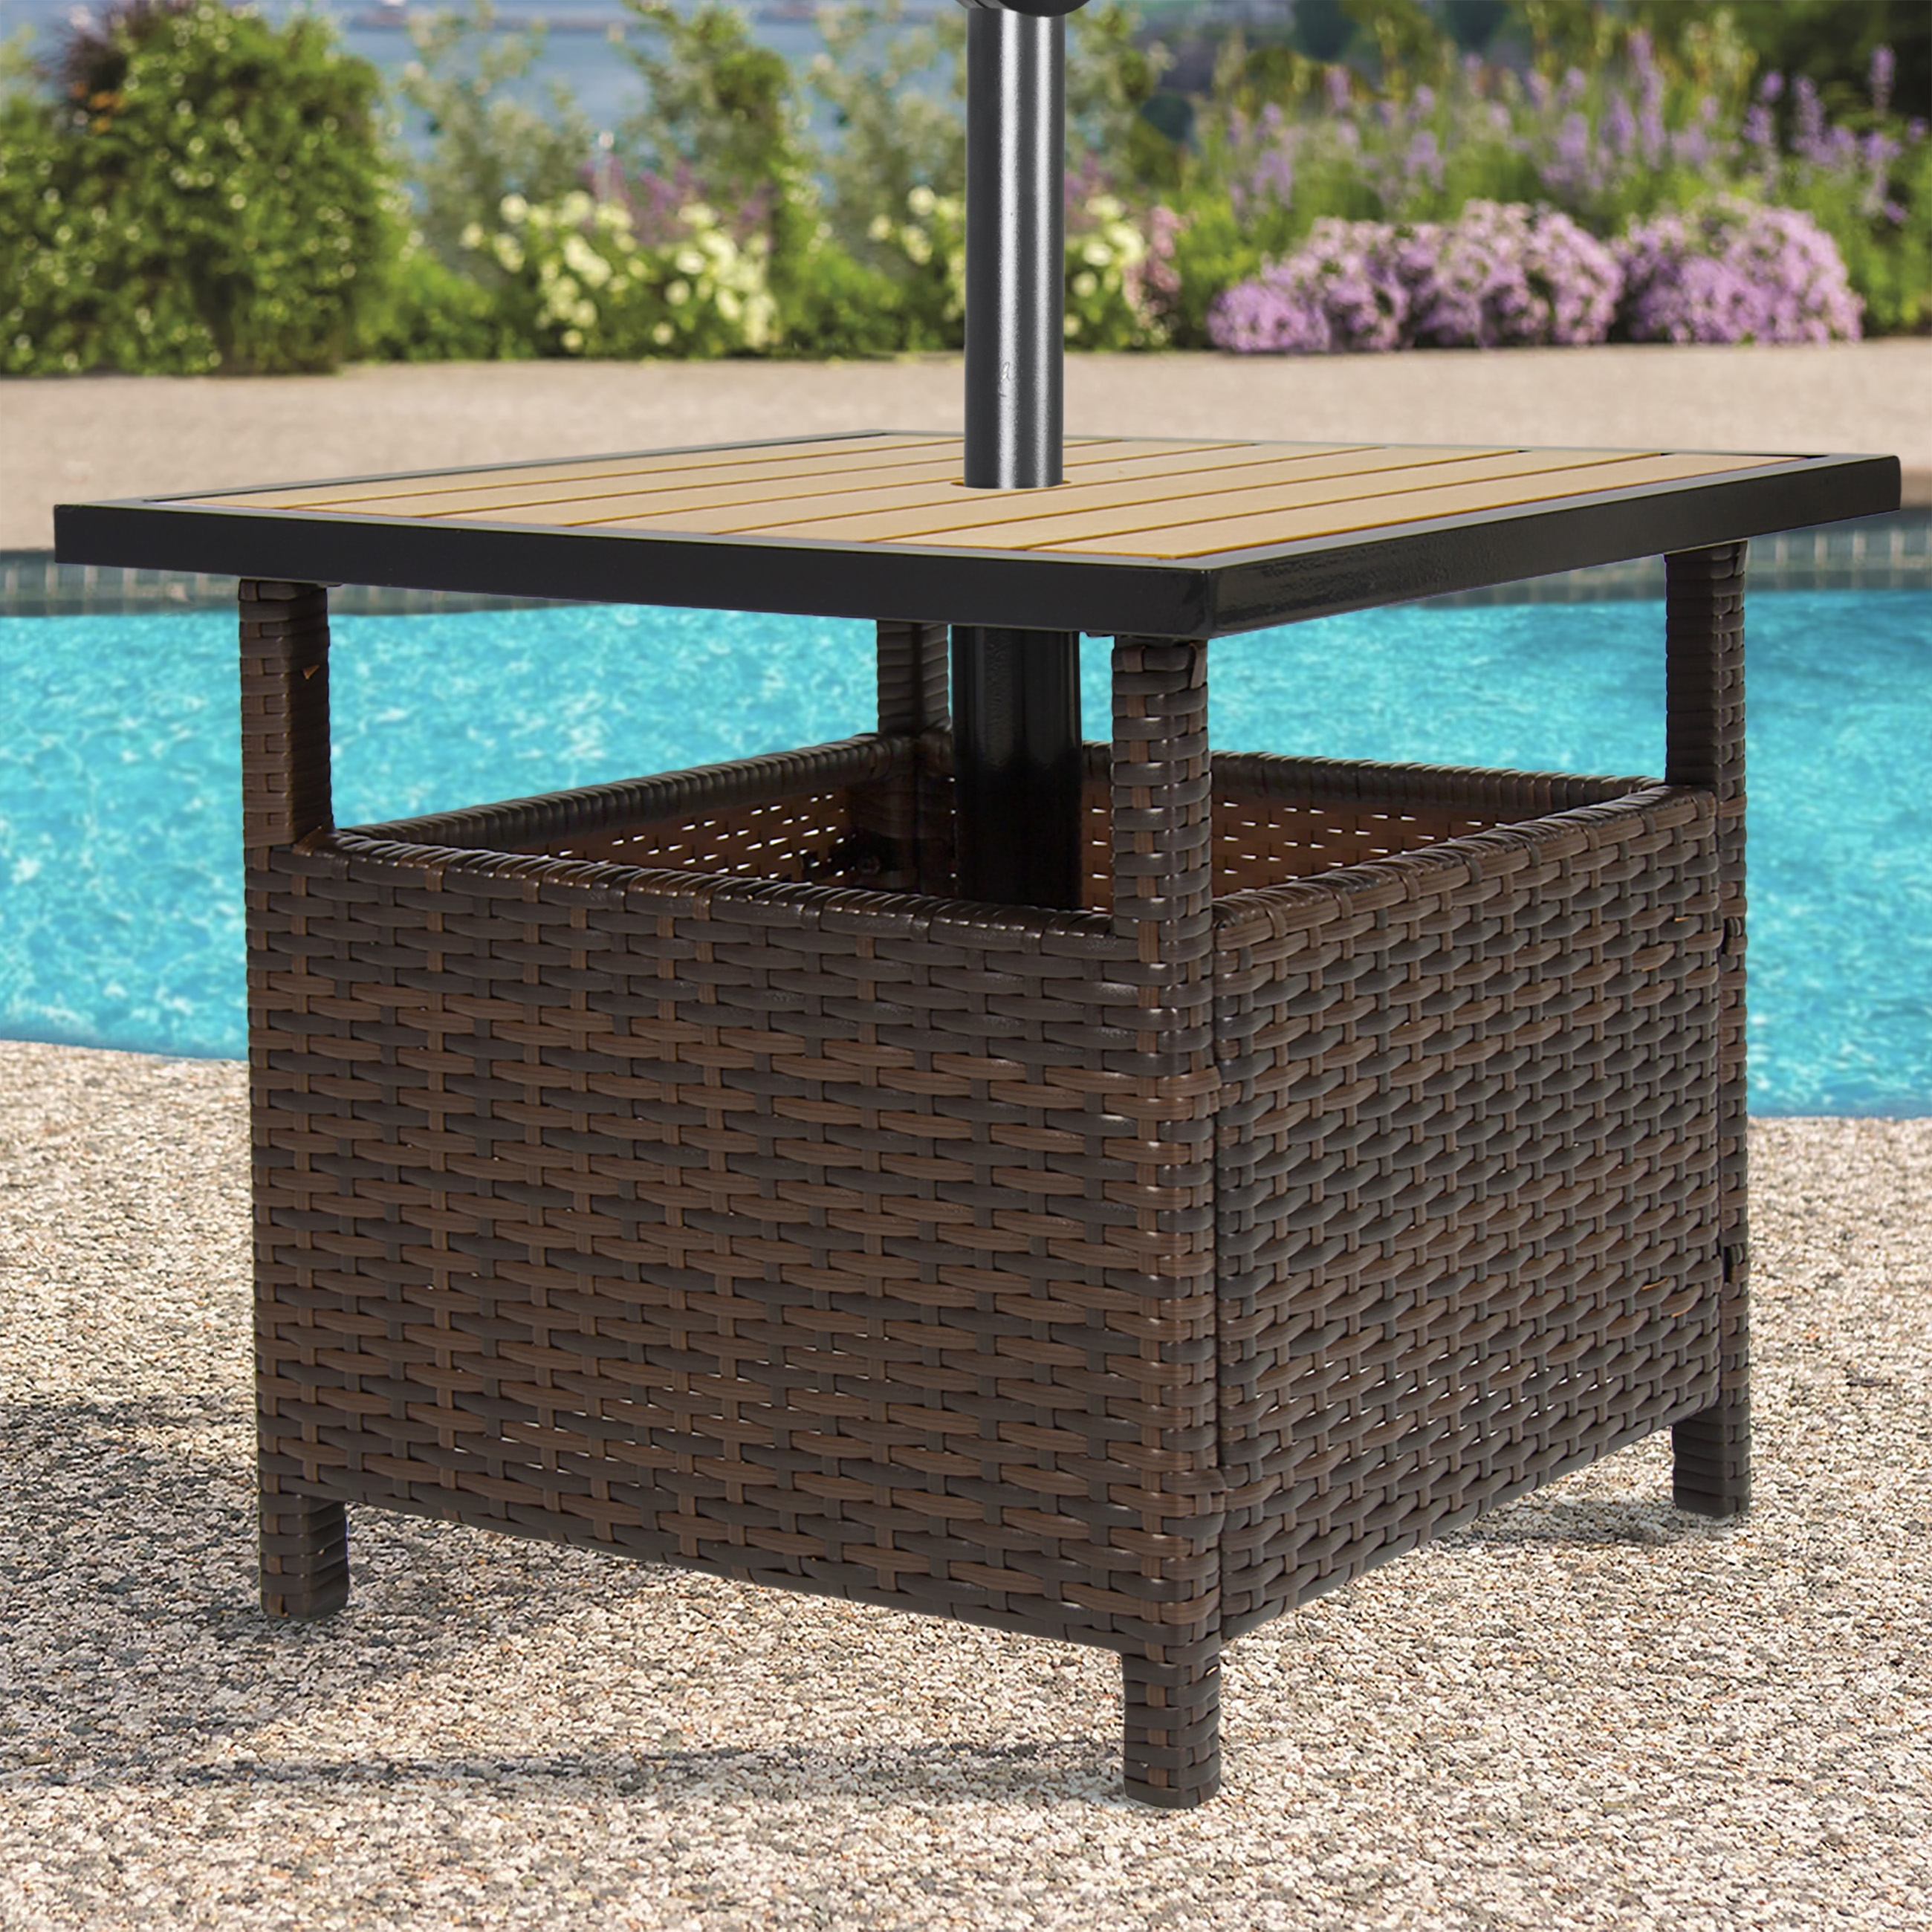 Patio Umbrella Side Tables In Well Known Best Choice Products Outdoor Furniture Wicker Rattan Patio Umbrella (View 12 of 20)